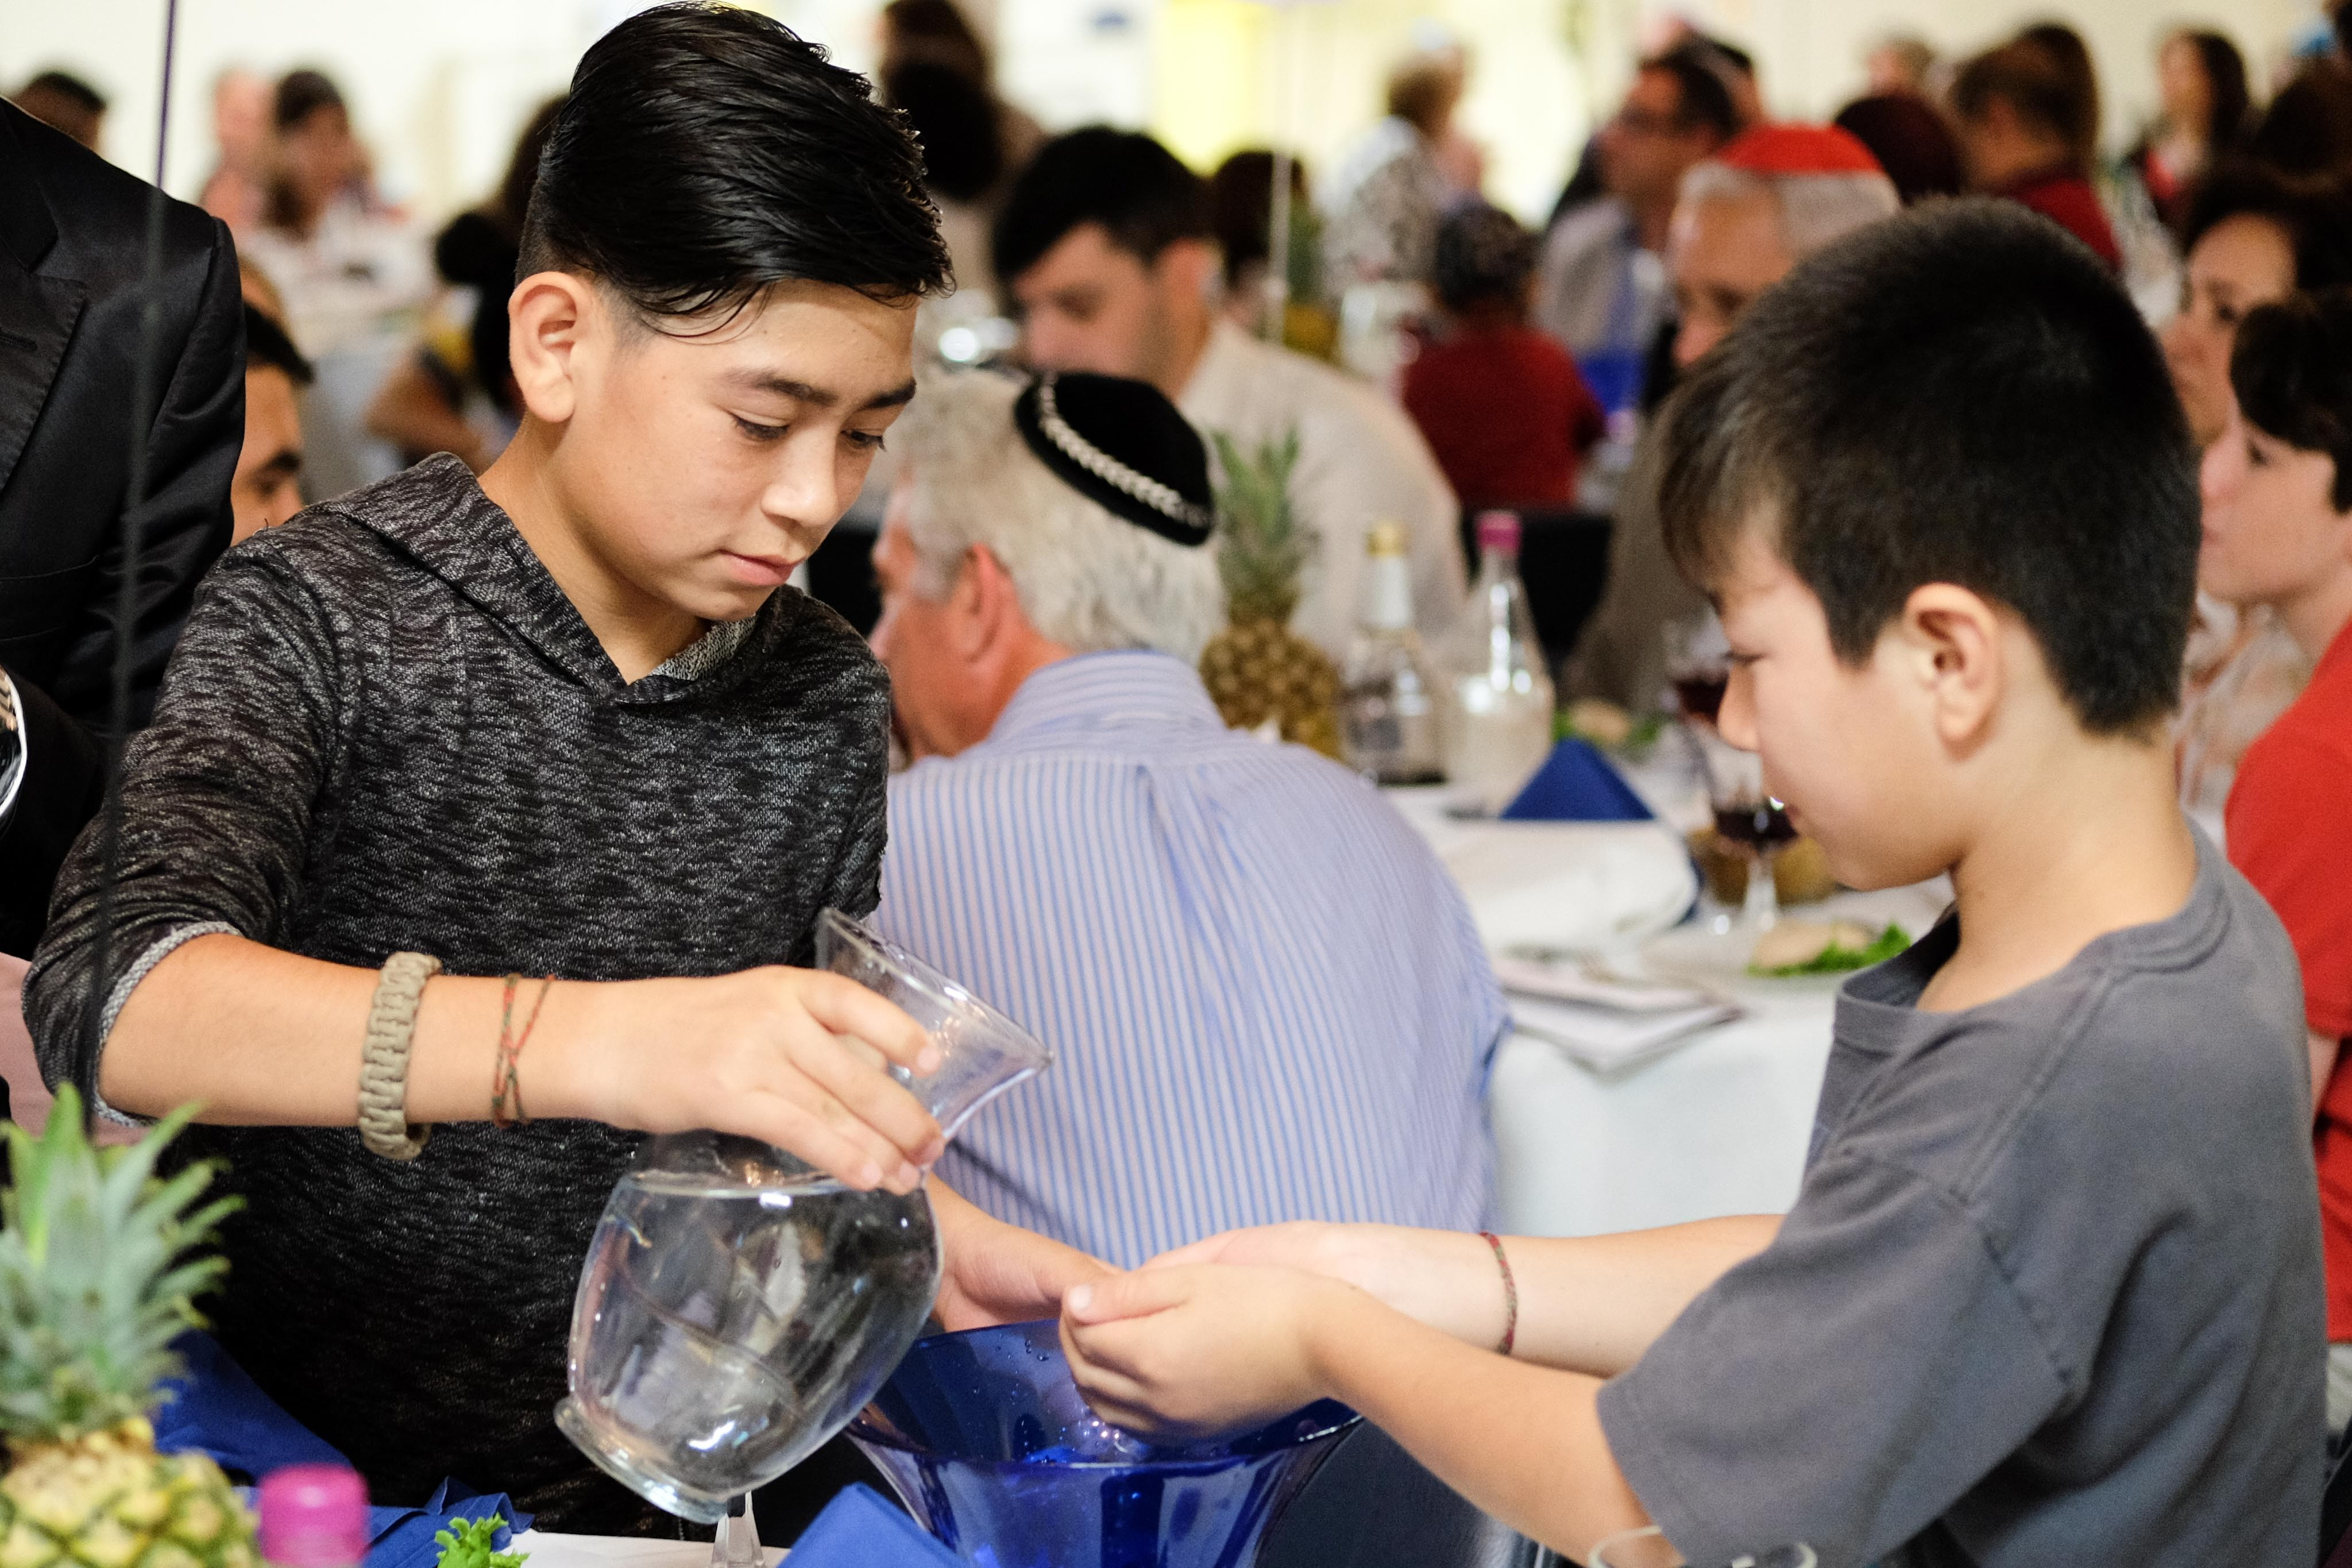 Organized with ReEstablish Richmond, a nonprofit dedicated to refugee resettlement services, the synagogue hosted the Seder for around 275 people. - JACKIE KRUSZEWSKI